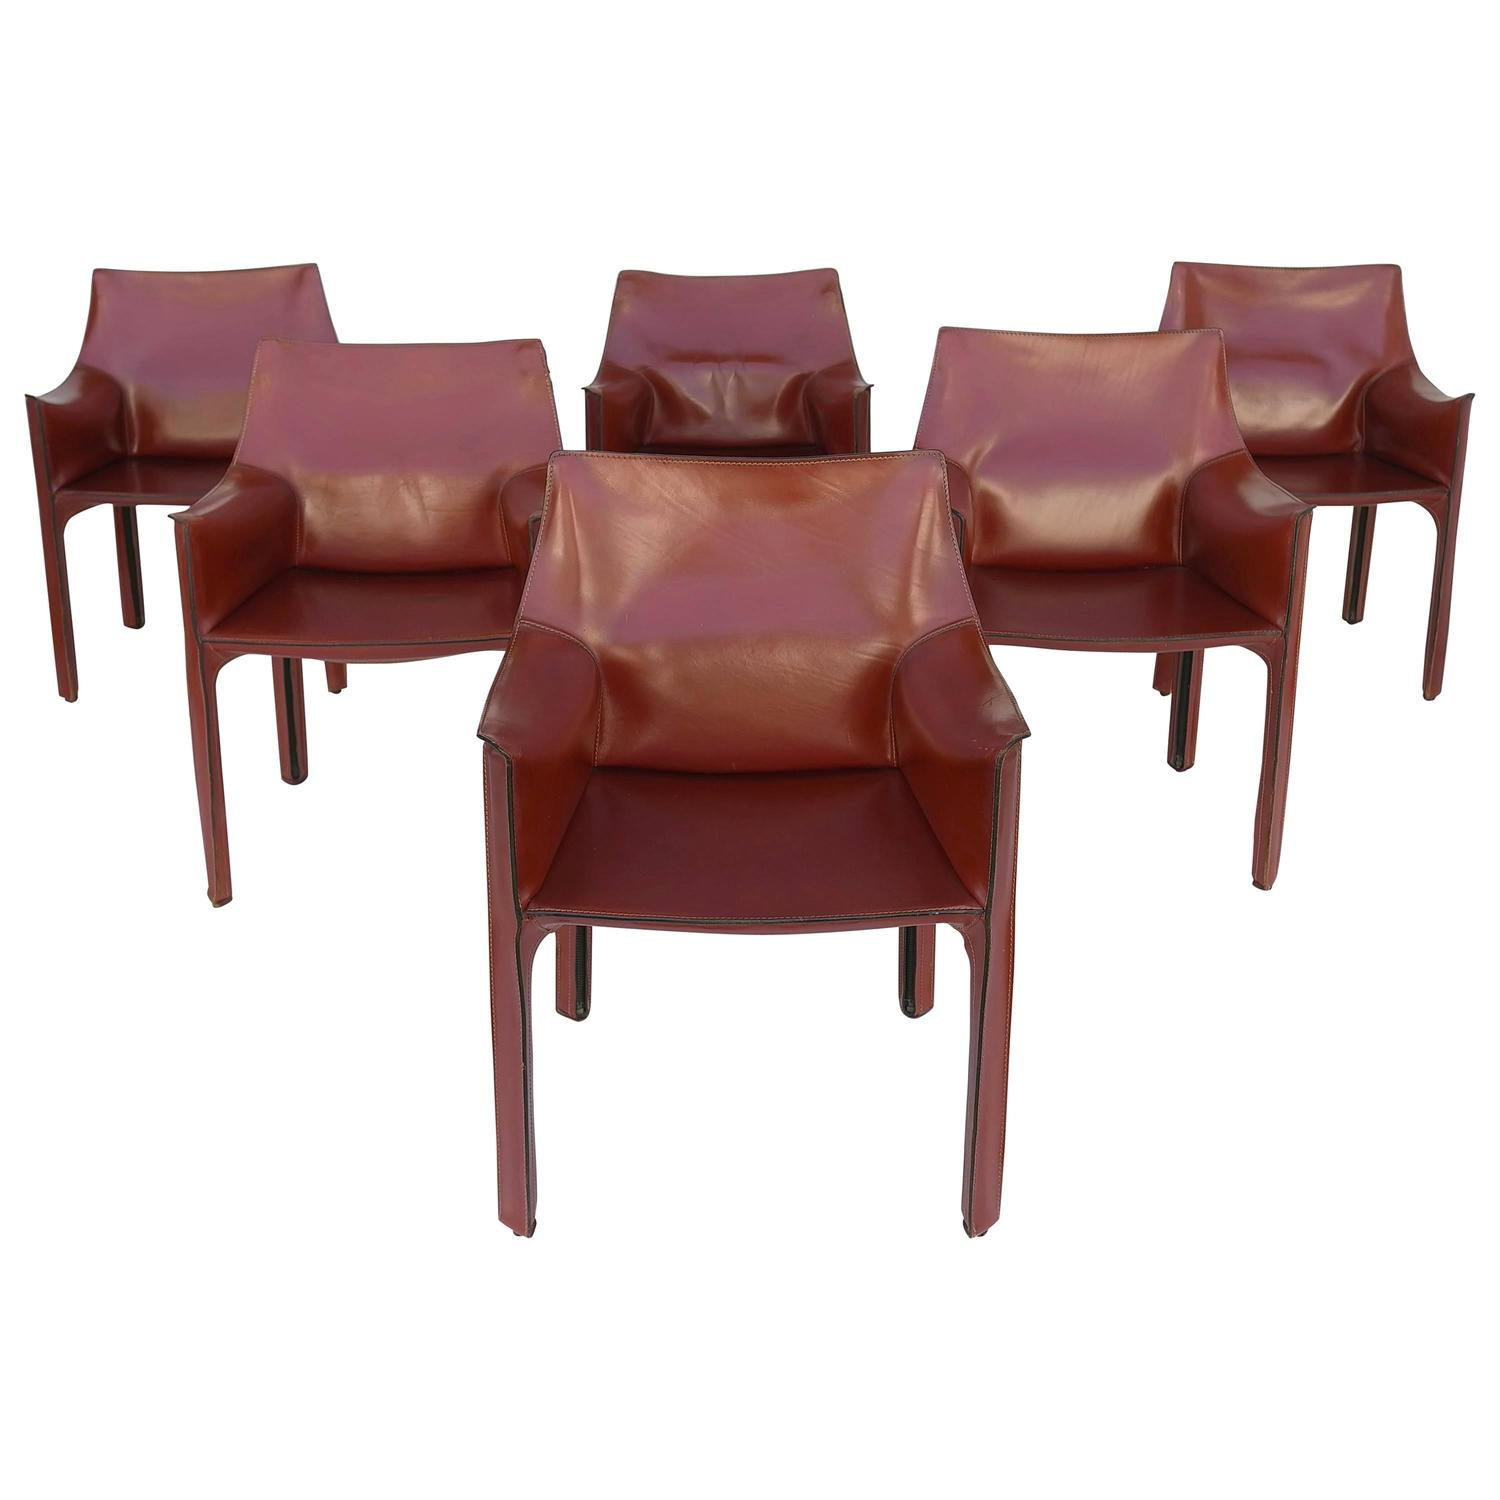 Mario Bellini Leather Cab Chairs by Cassina Italy For Sale at 1stdibs